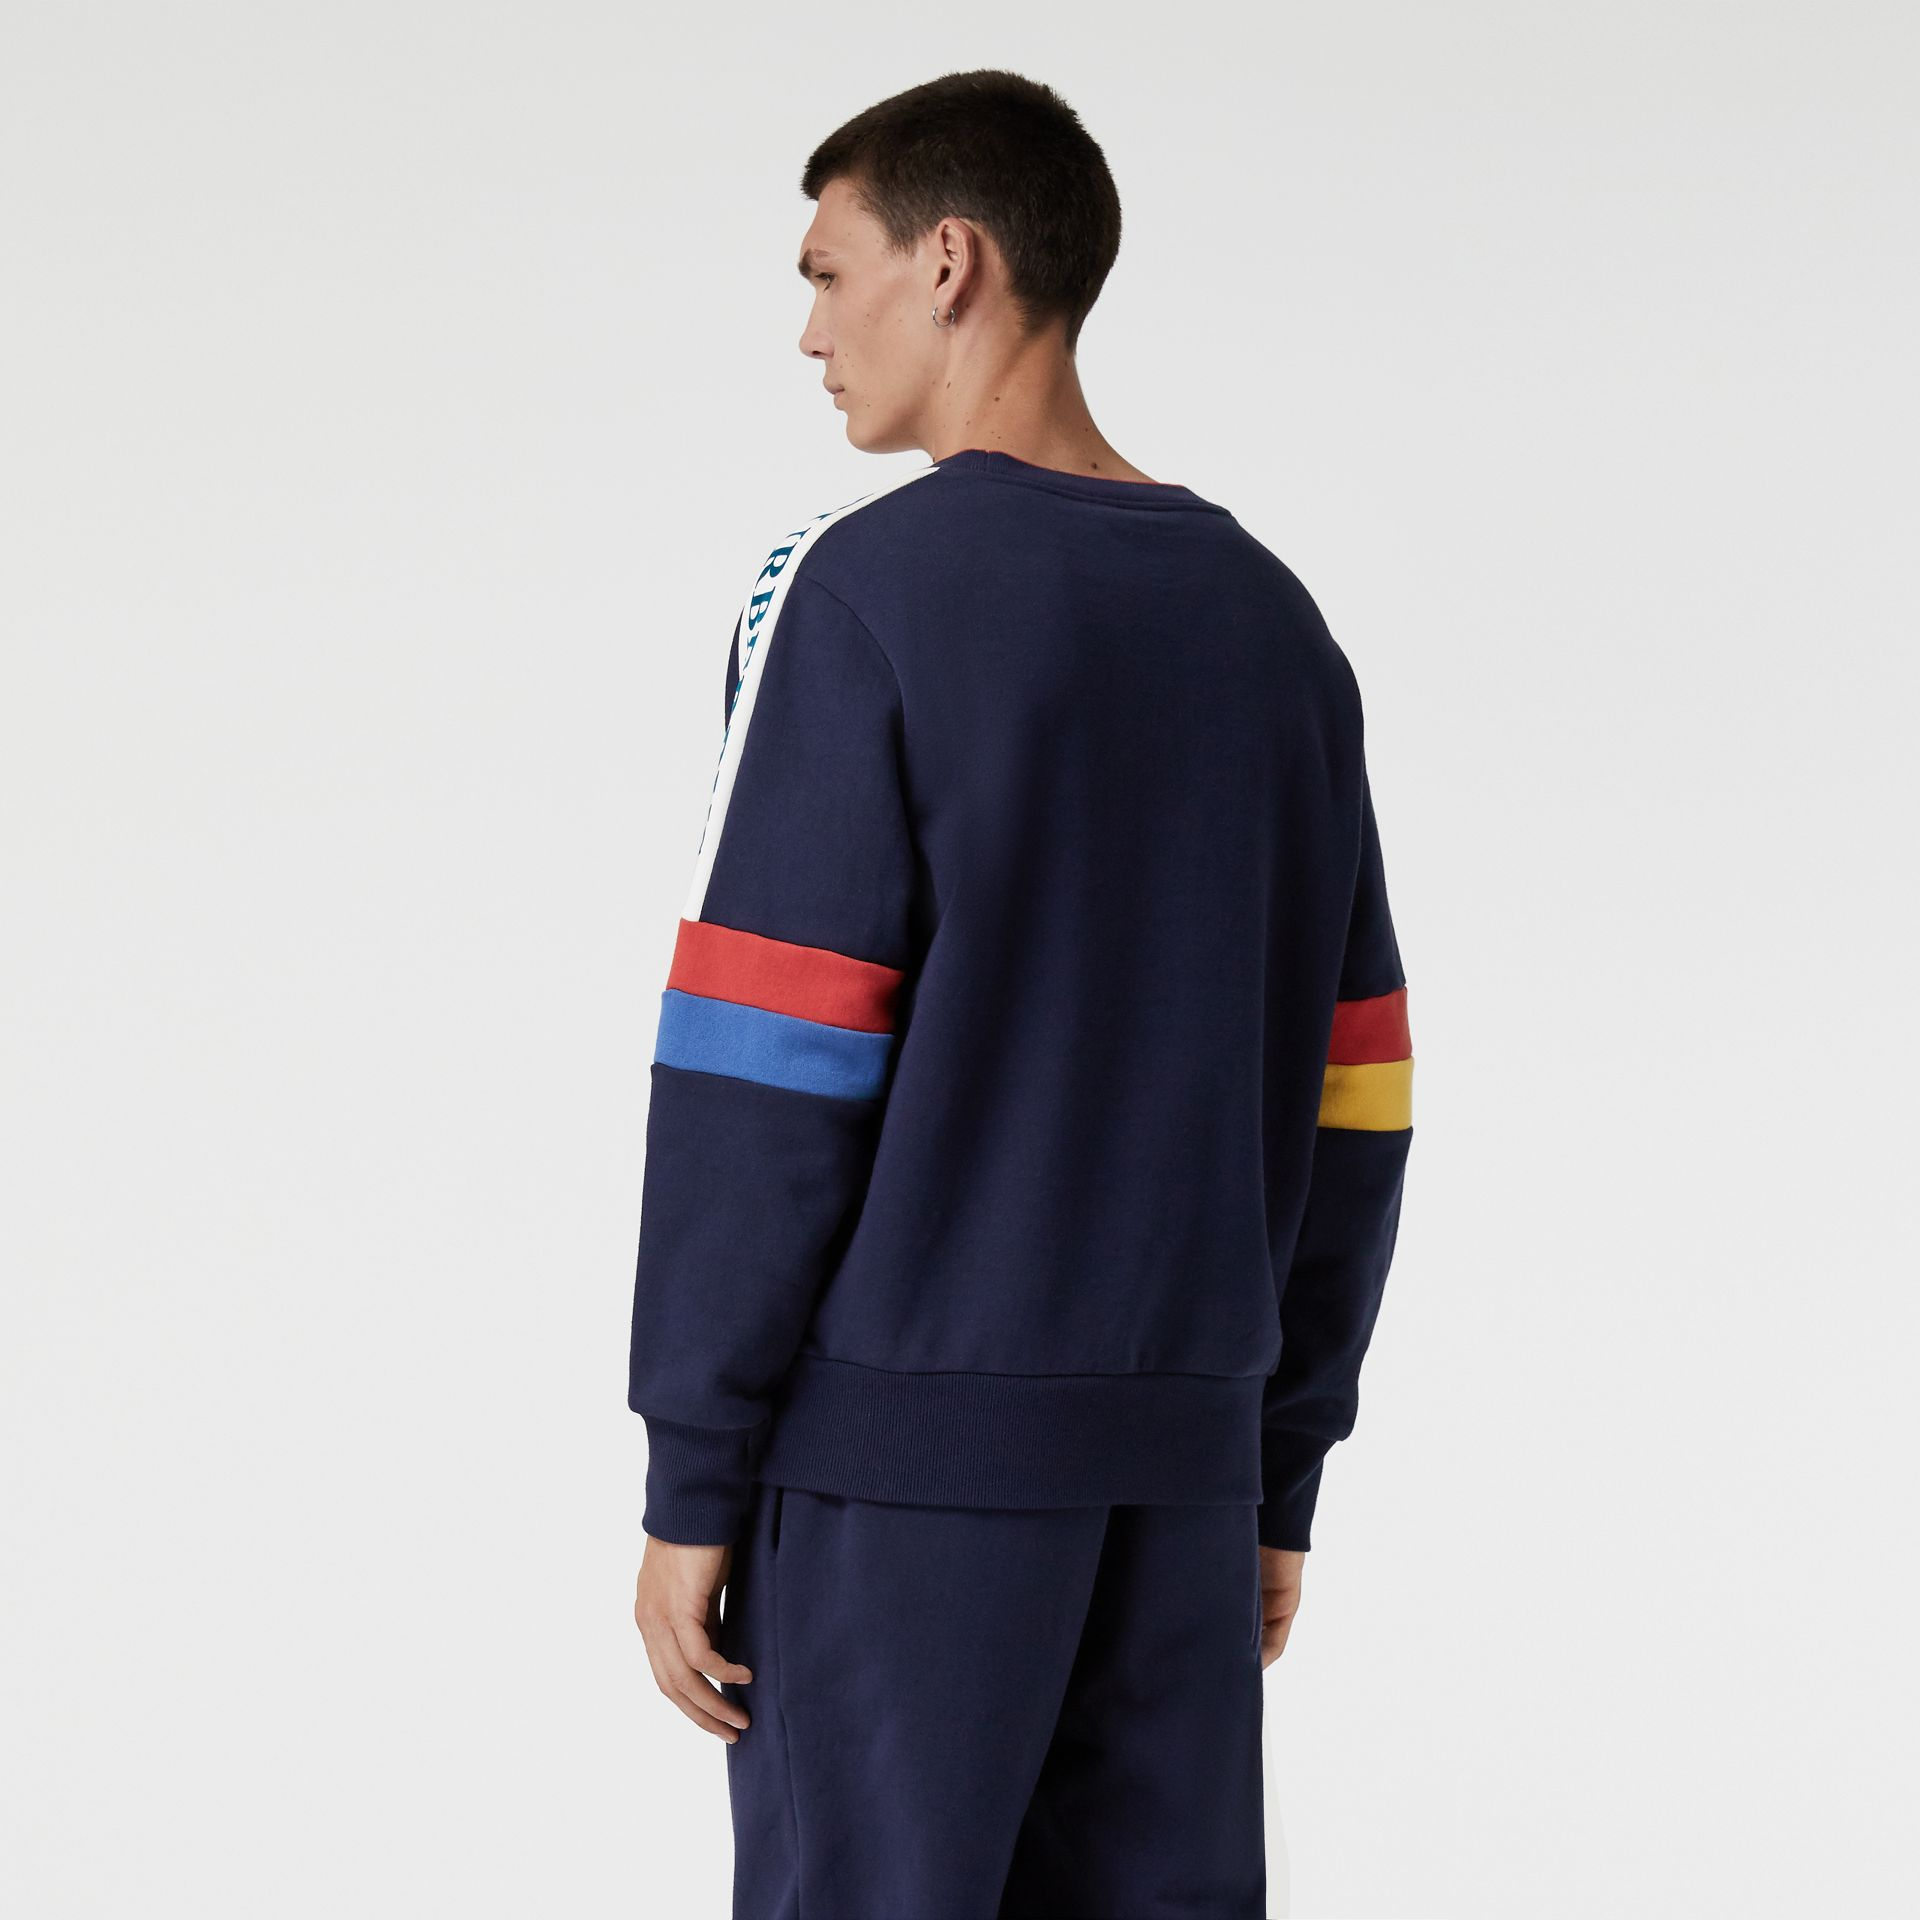 Colour Block Embroidered Archive Logo Sweatshirt in True Navy - Men | Burberry Canada - gallery image 2